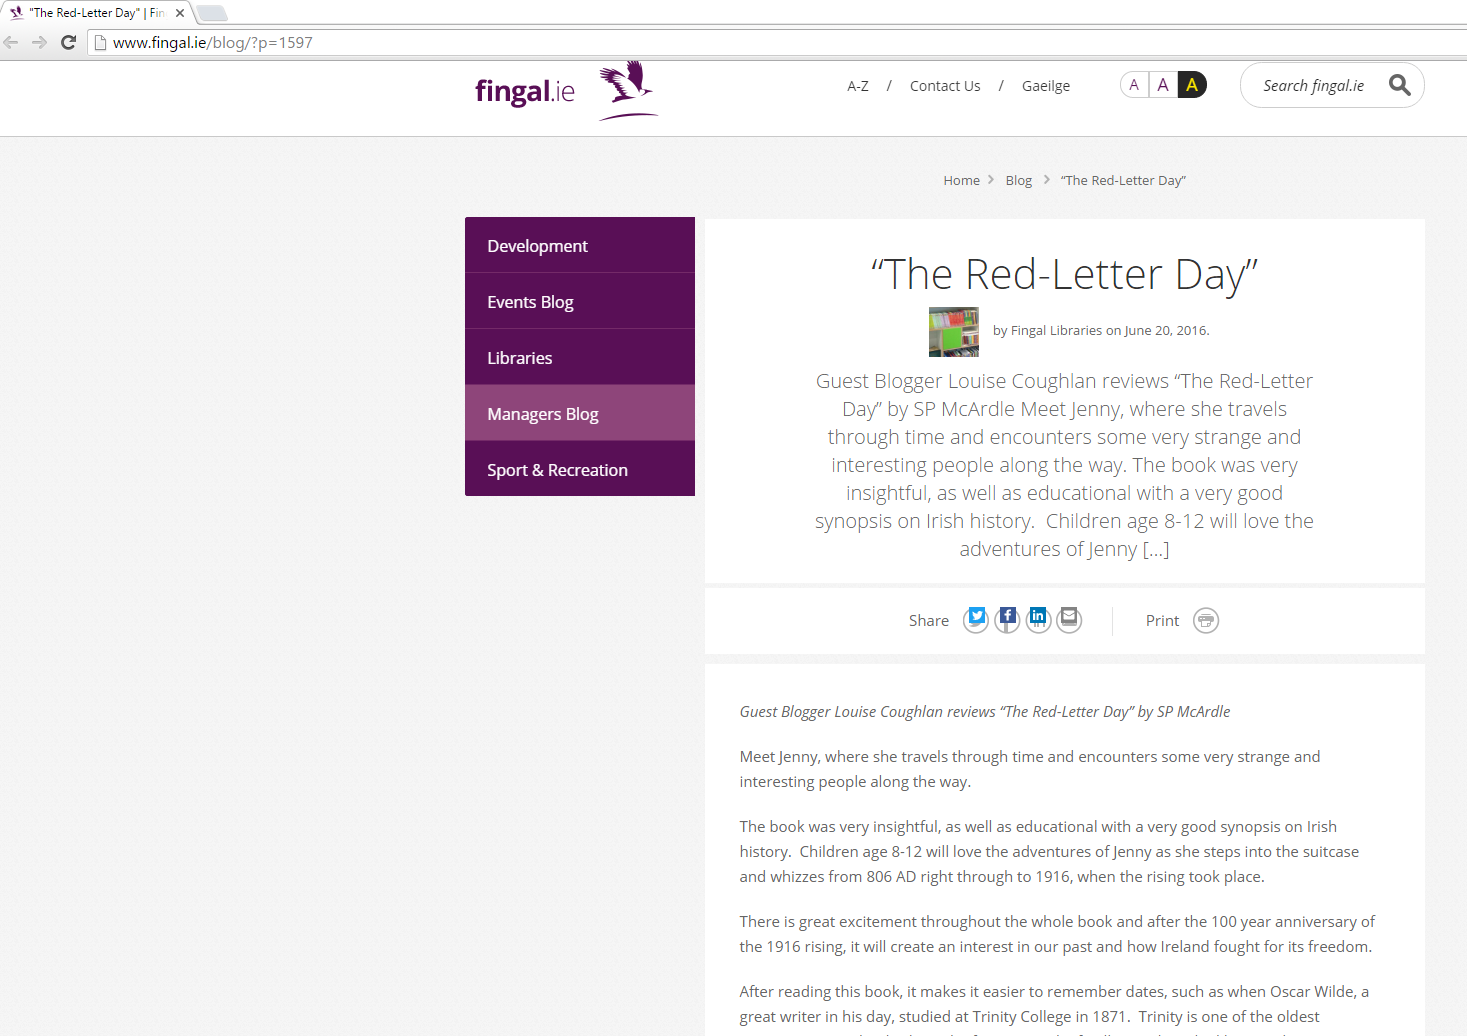 june-20-review-of-the-red-letter-day-on-fingals-blog